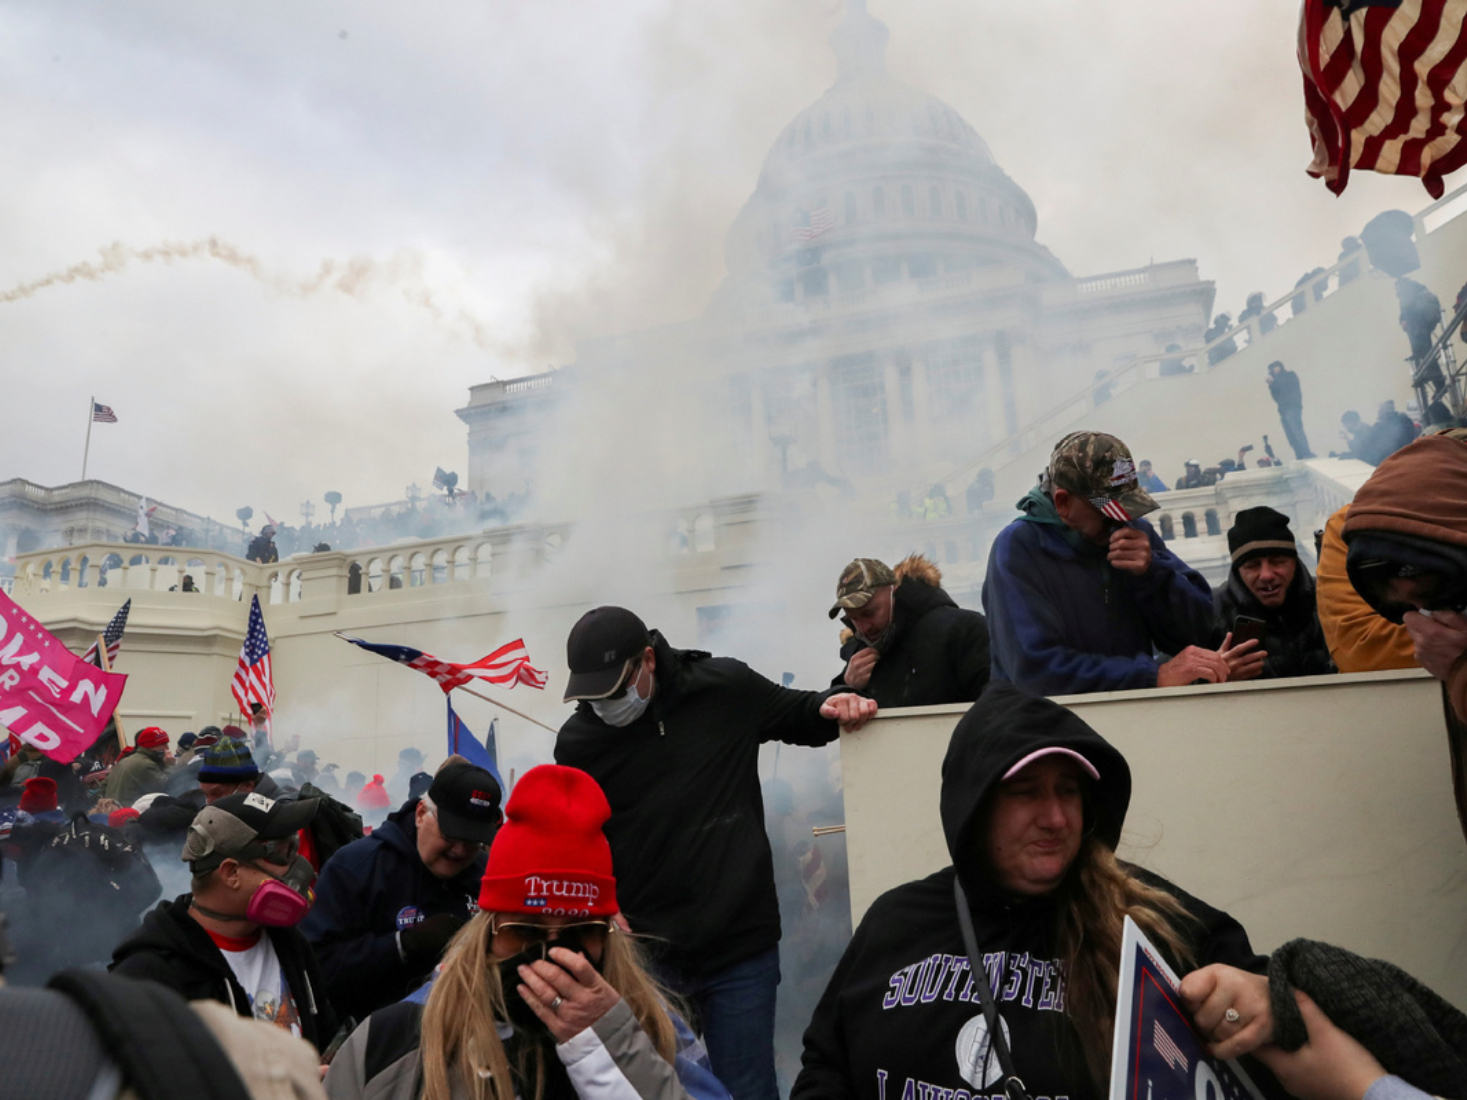 State capitols around US also saw protests